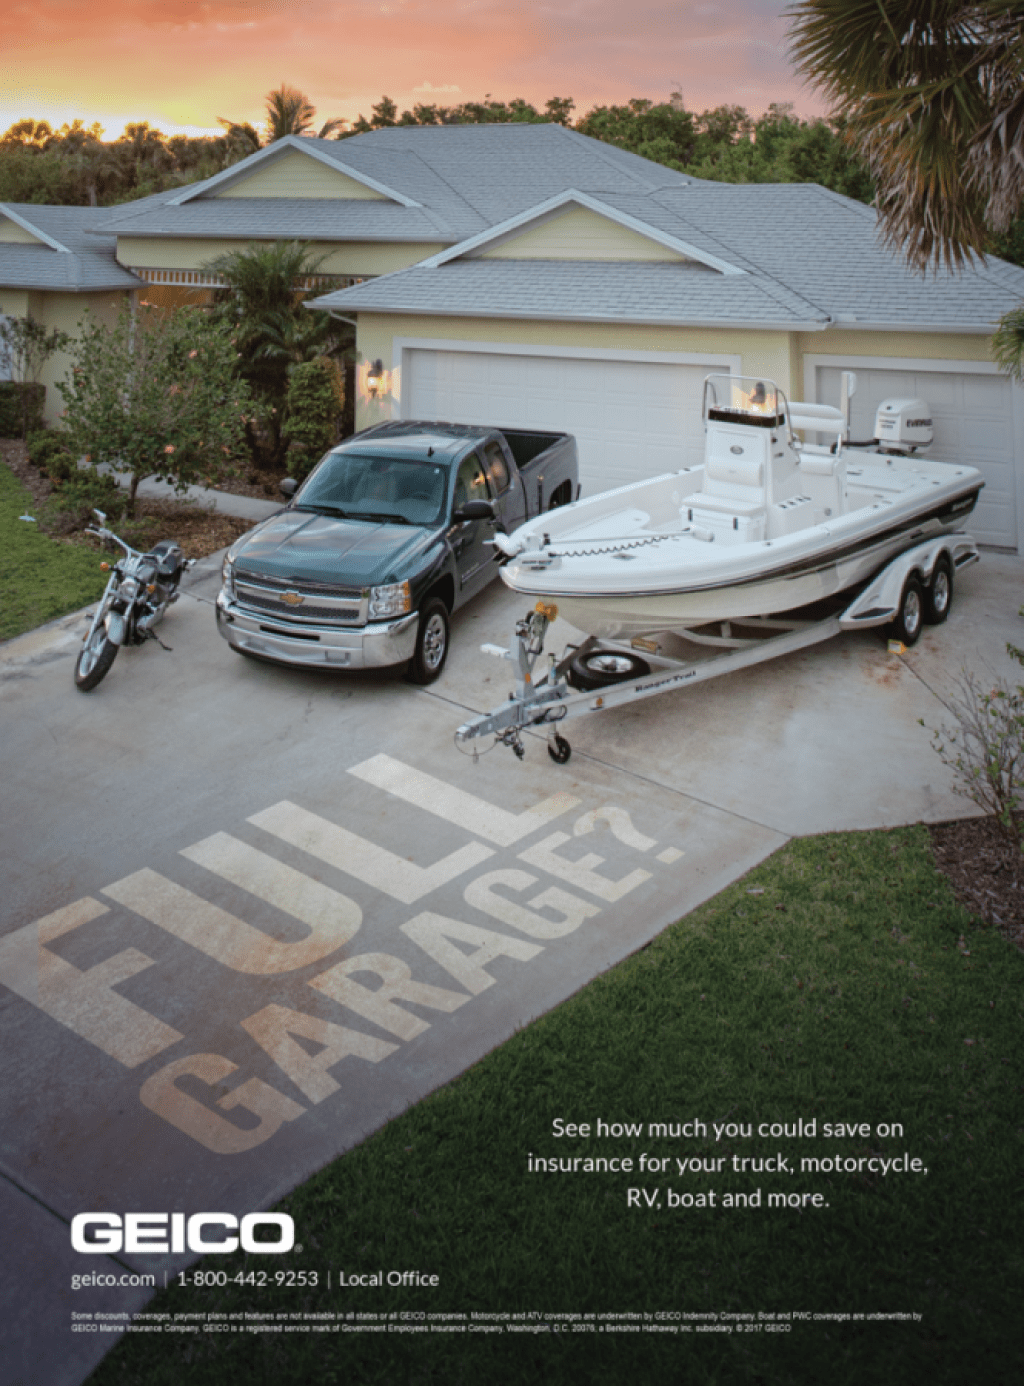 geico boat insurance phone number